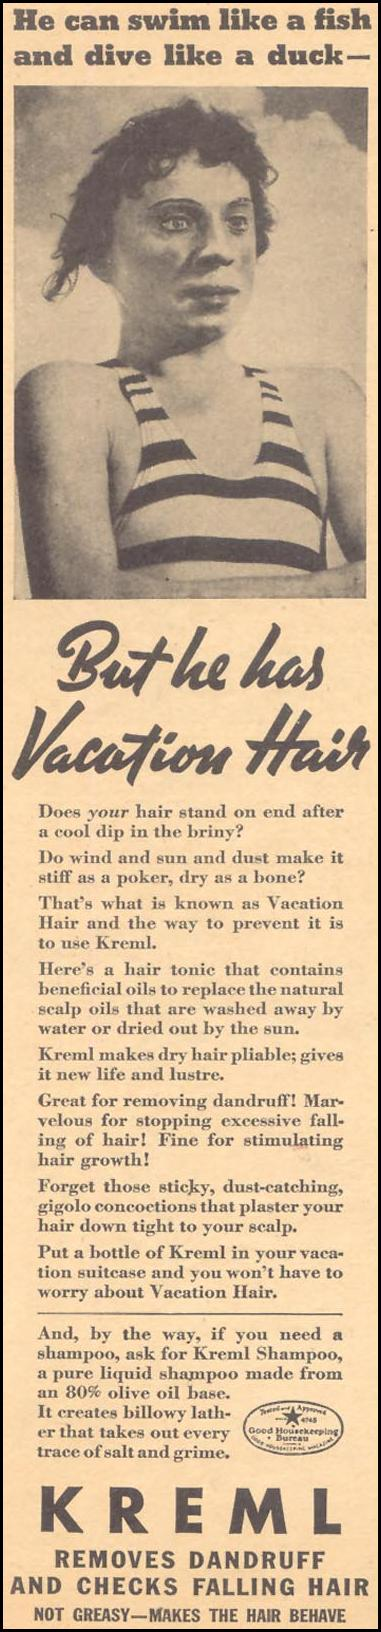 KREML HAIR TONIC LIBERTY 08/08/1936 p. 8